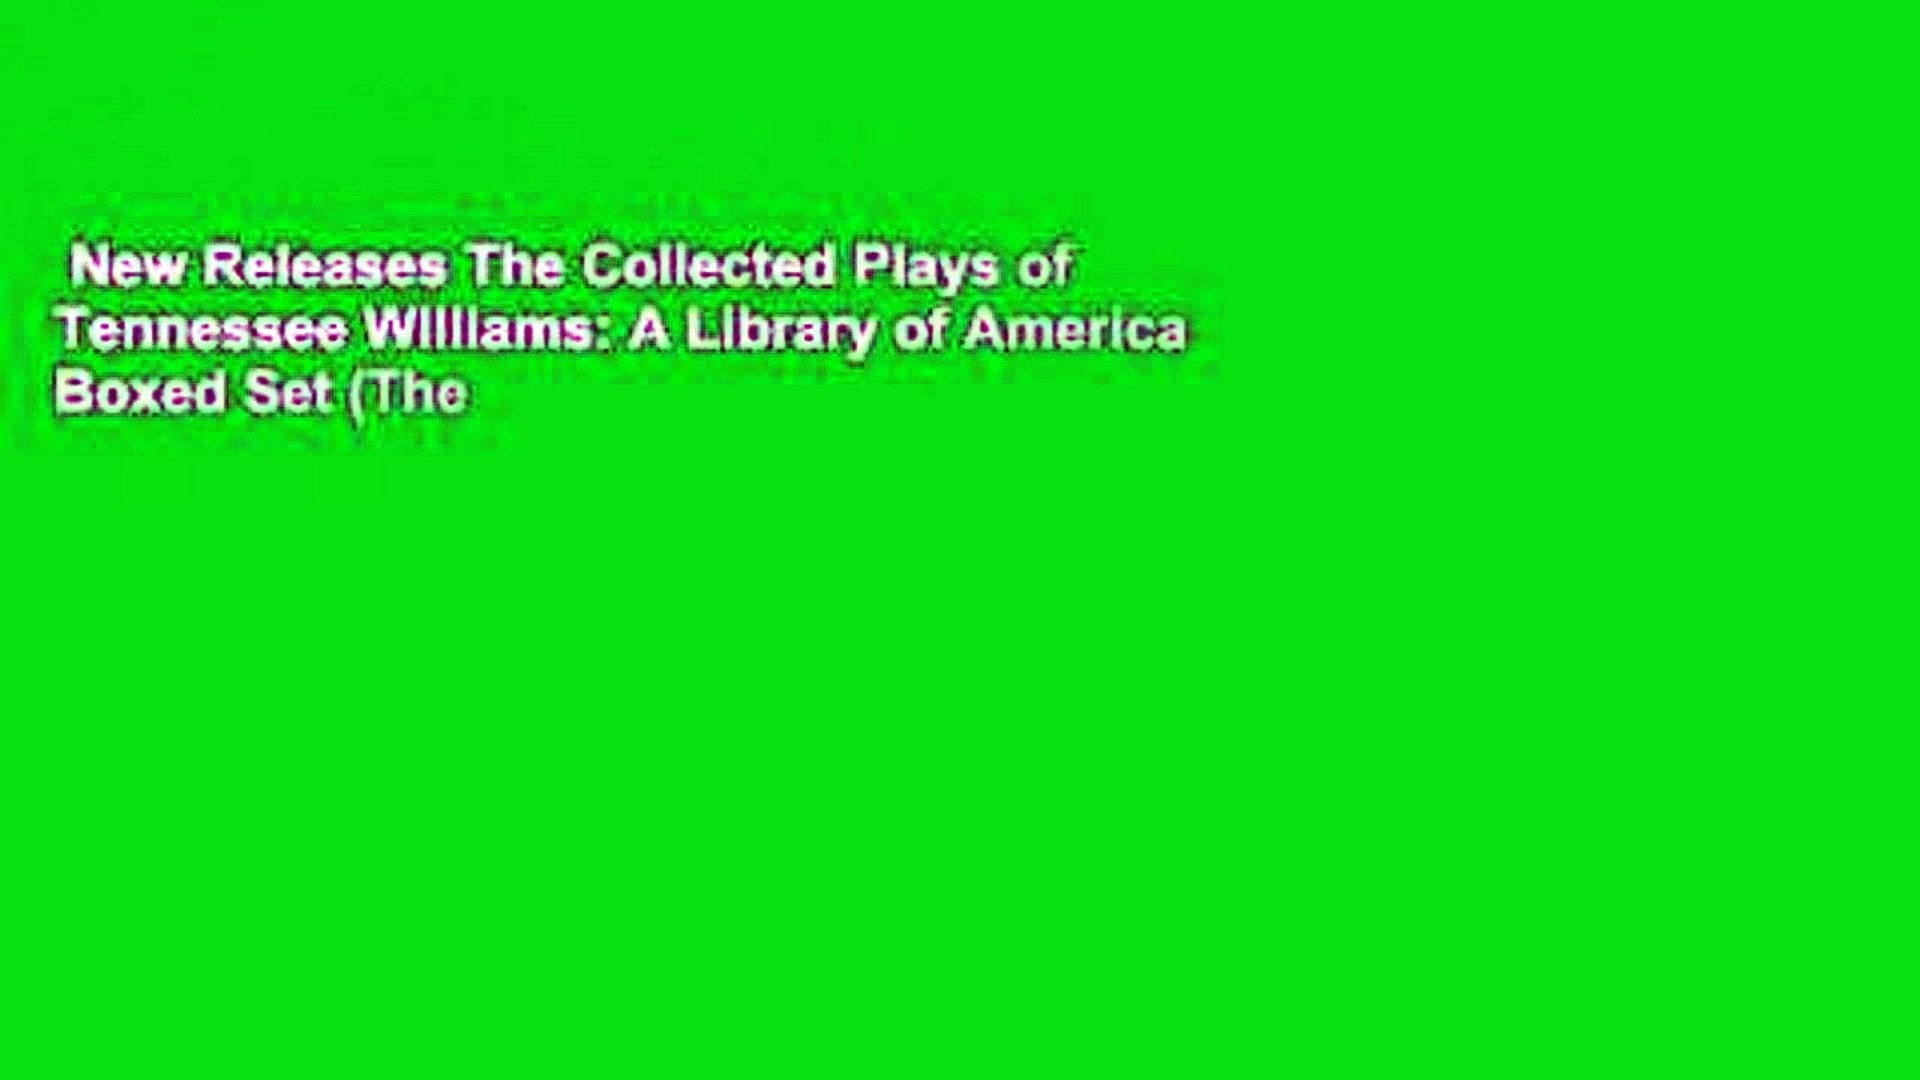 New Releases The Collected Plays of Tennessee Williams: A Library of America Boxed Set (The